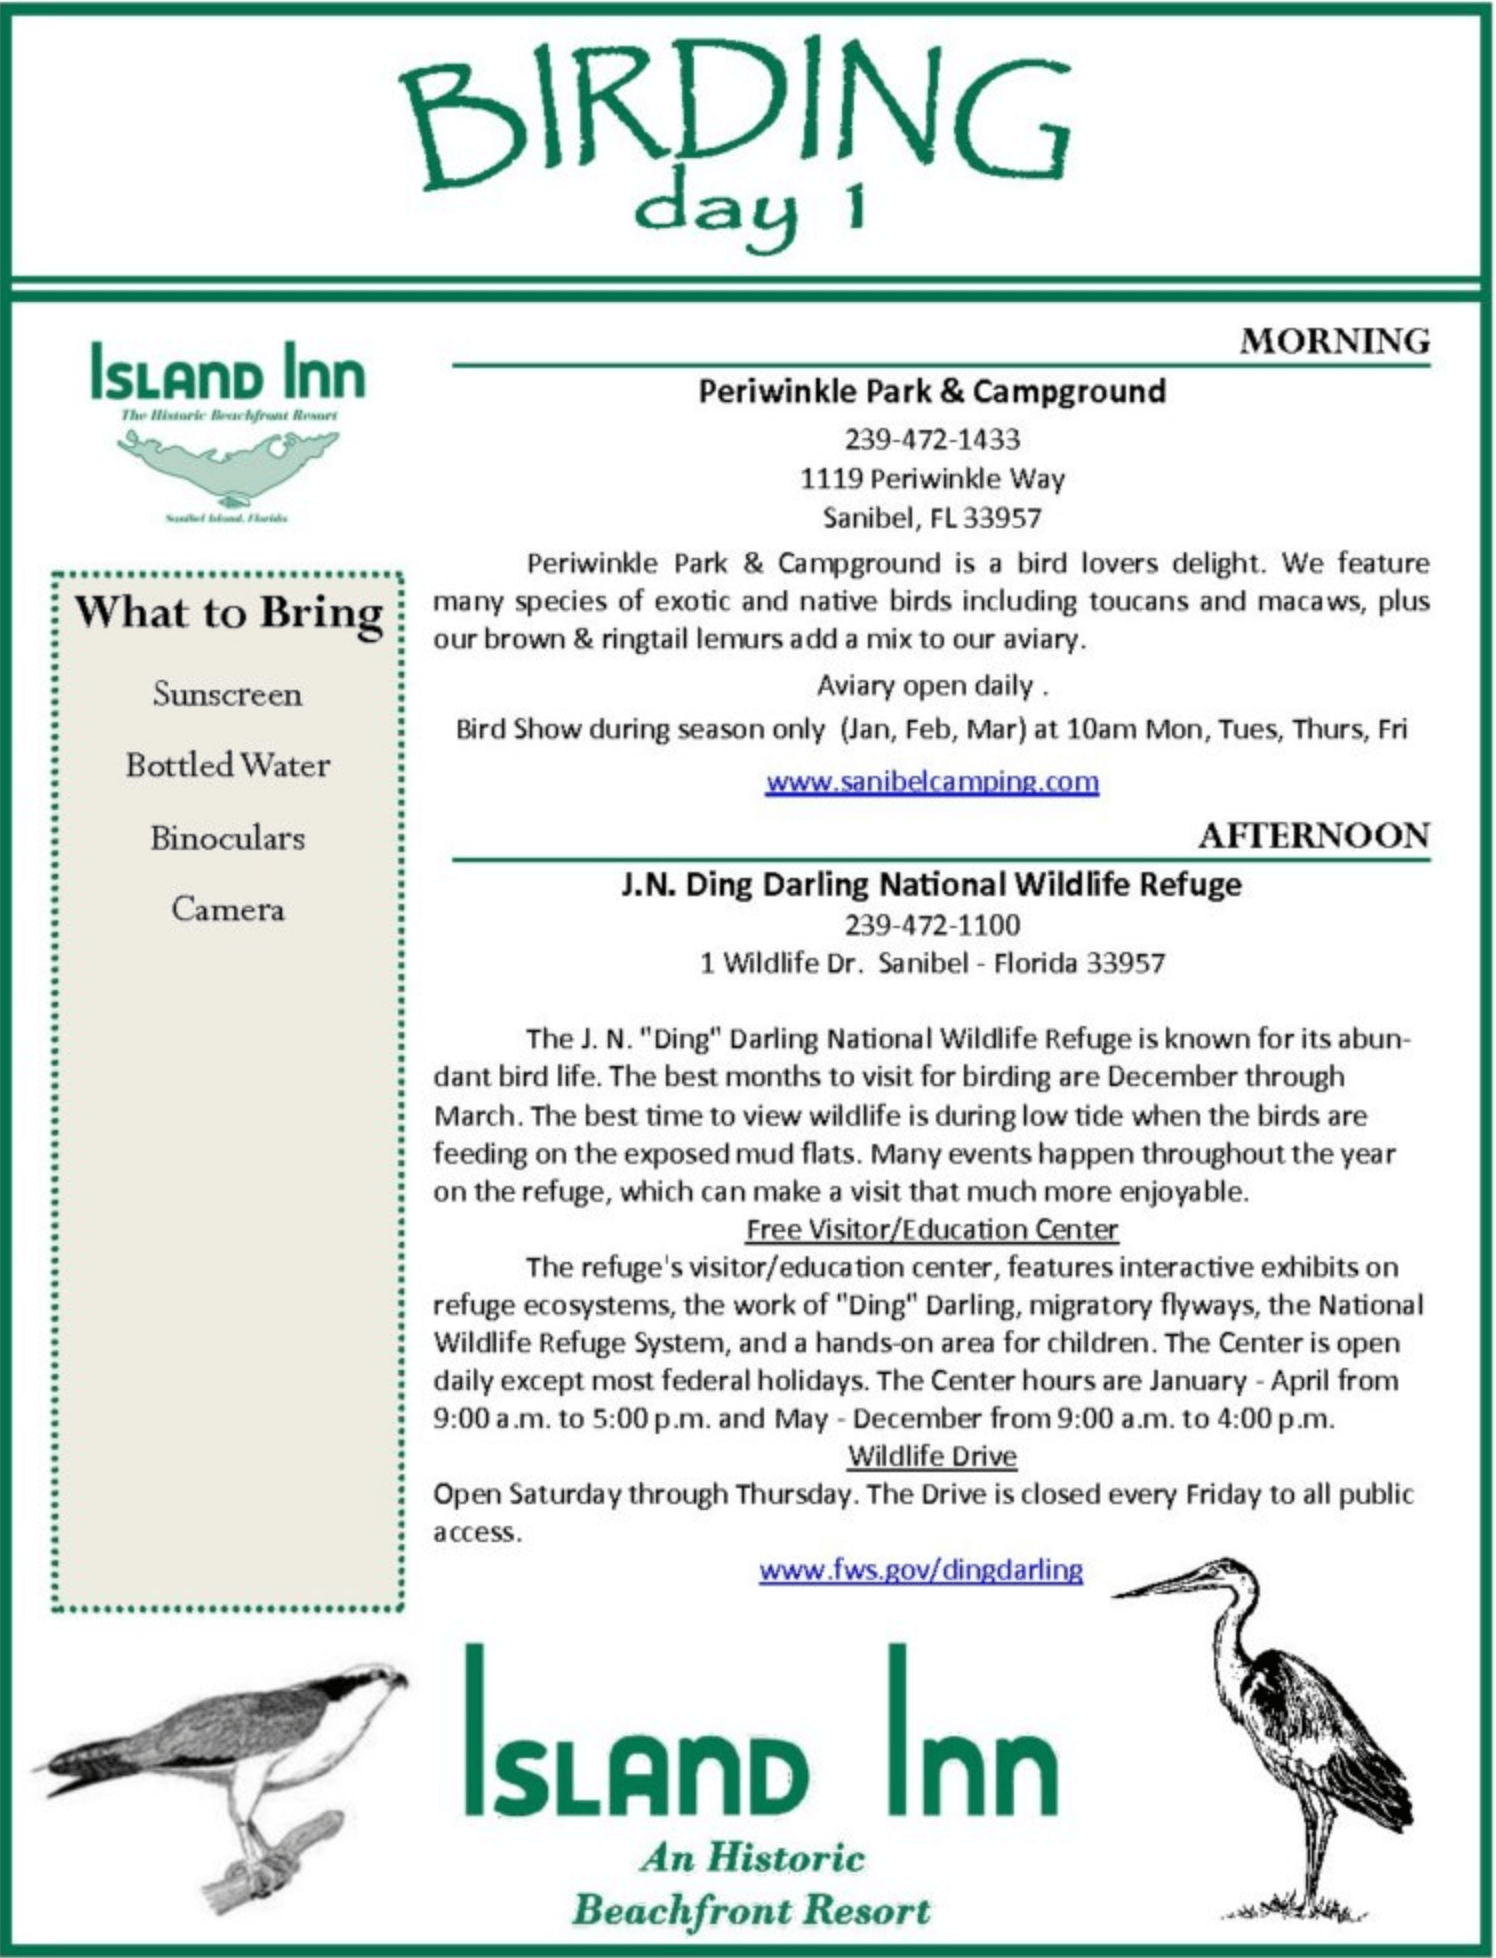 sanibel bird watching itinerary preview